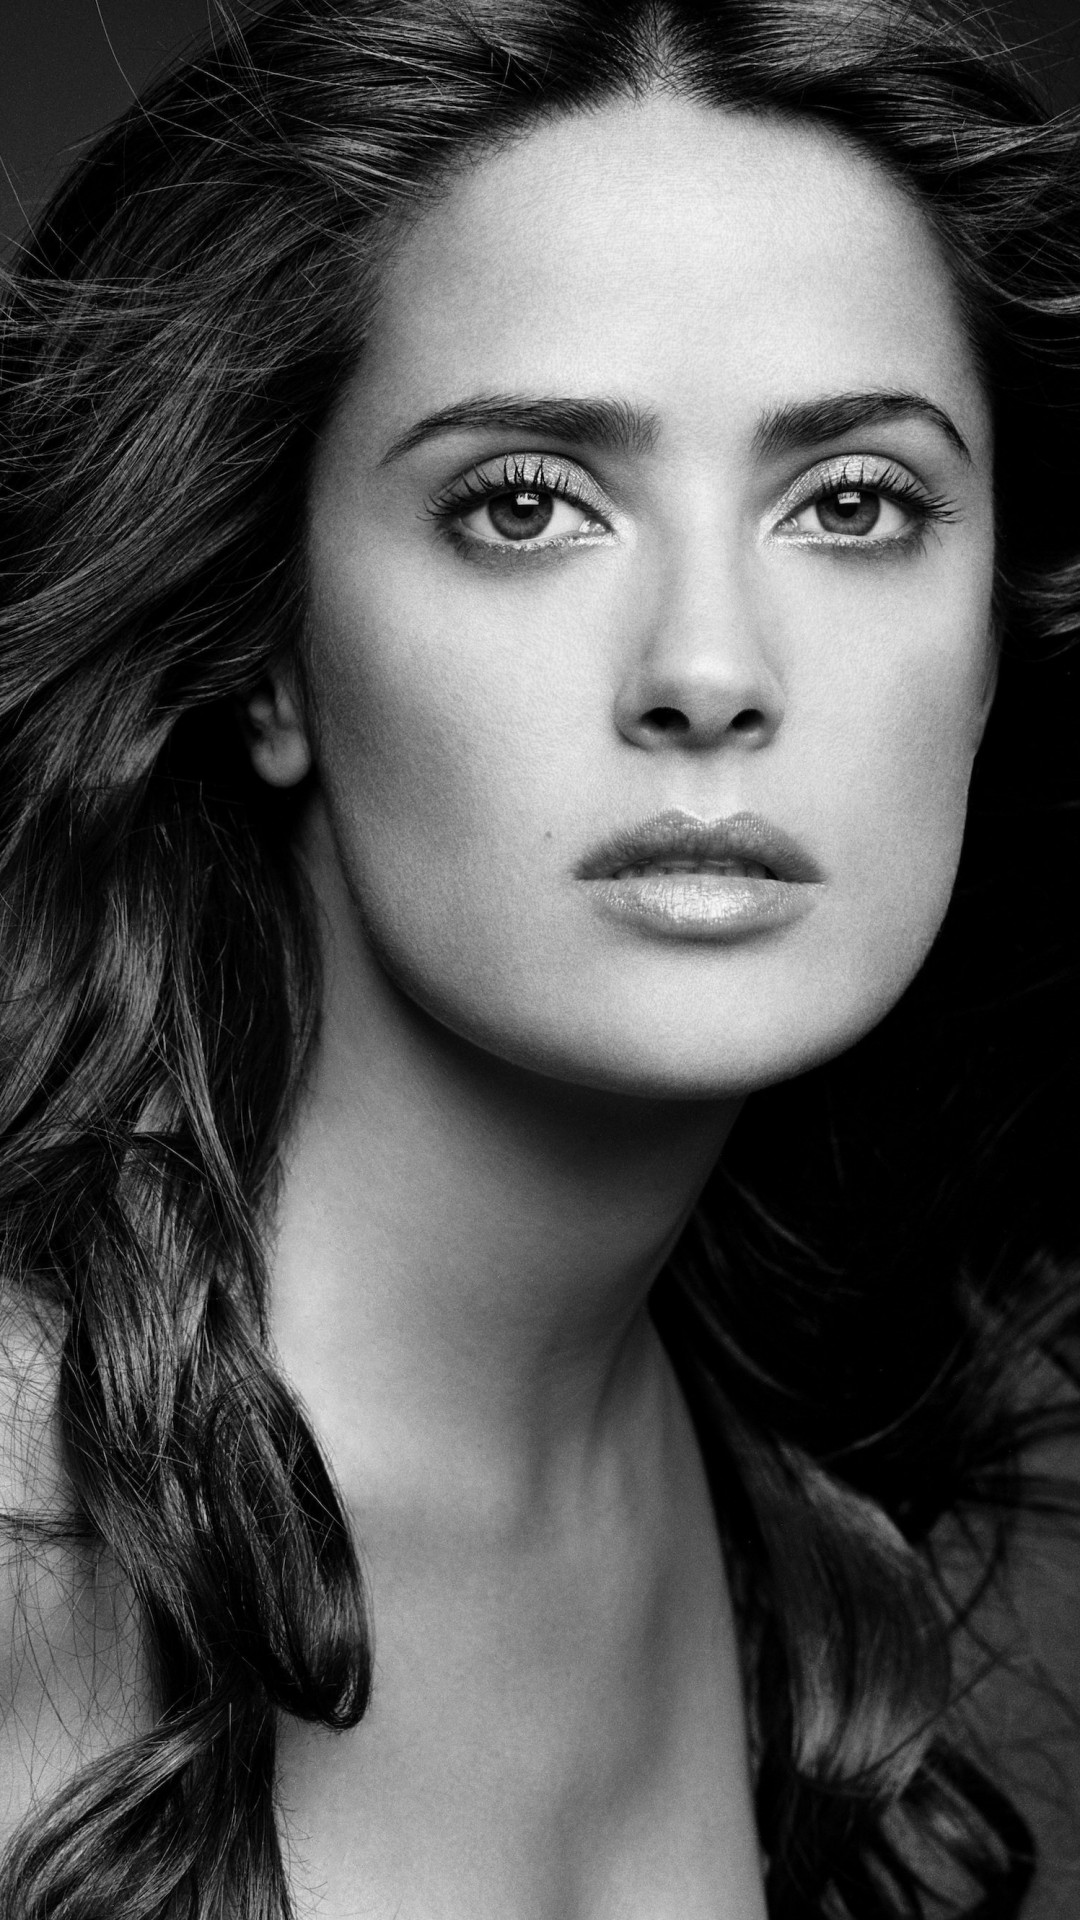 Salma Hayek Black & White Portrait Wallpaper for Motorola Moto X